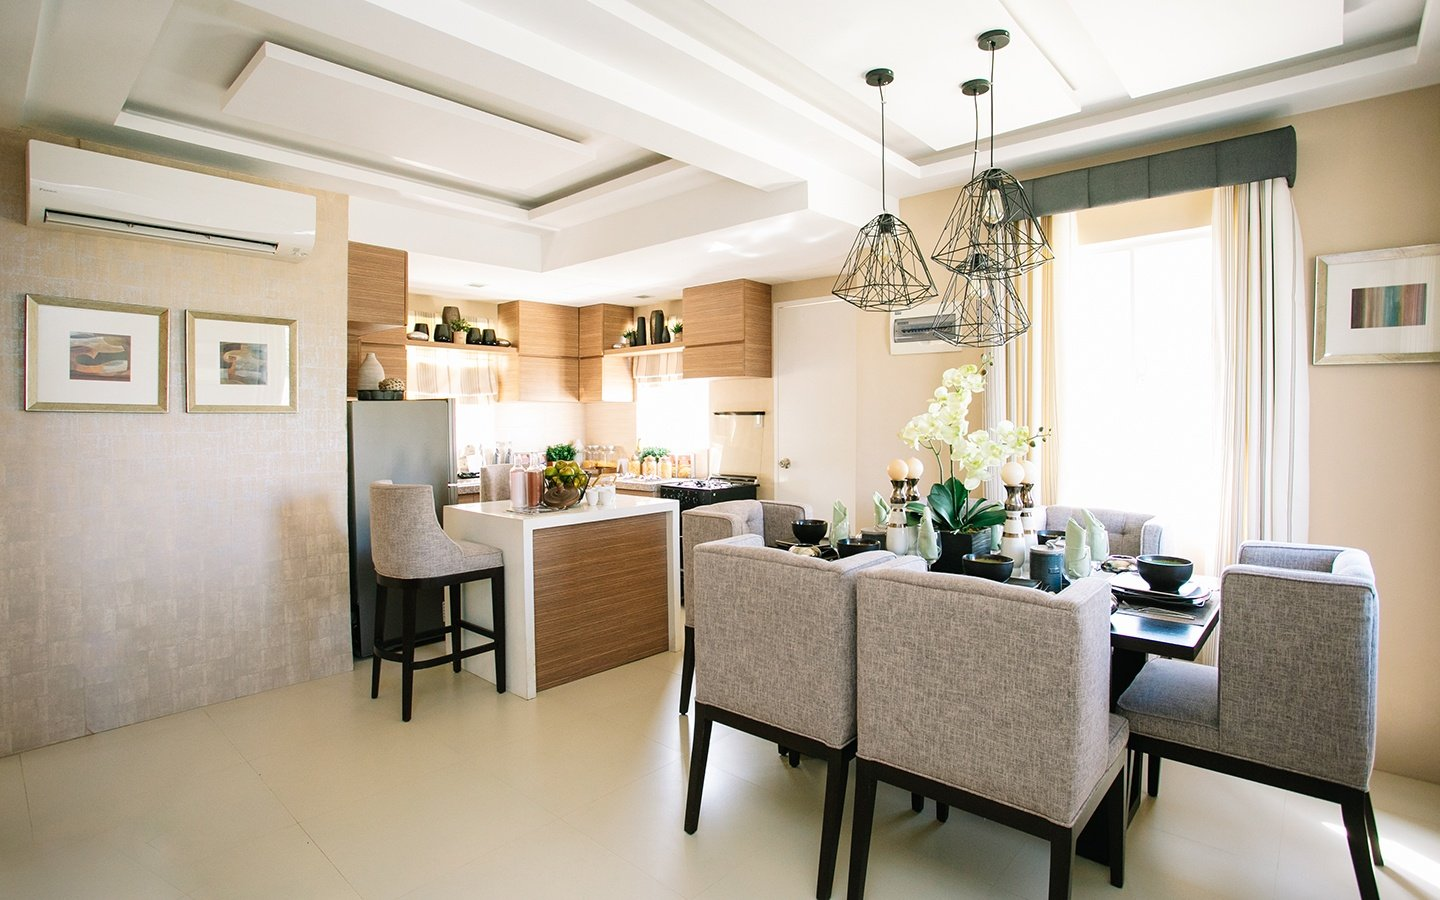 Dana home dining and kitchen areas